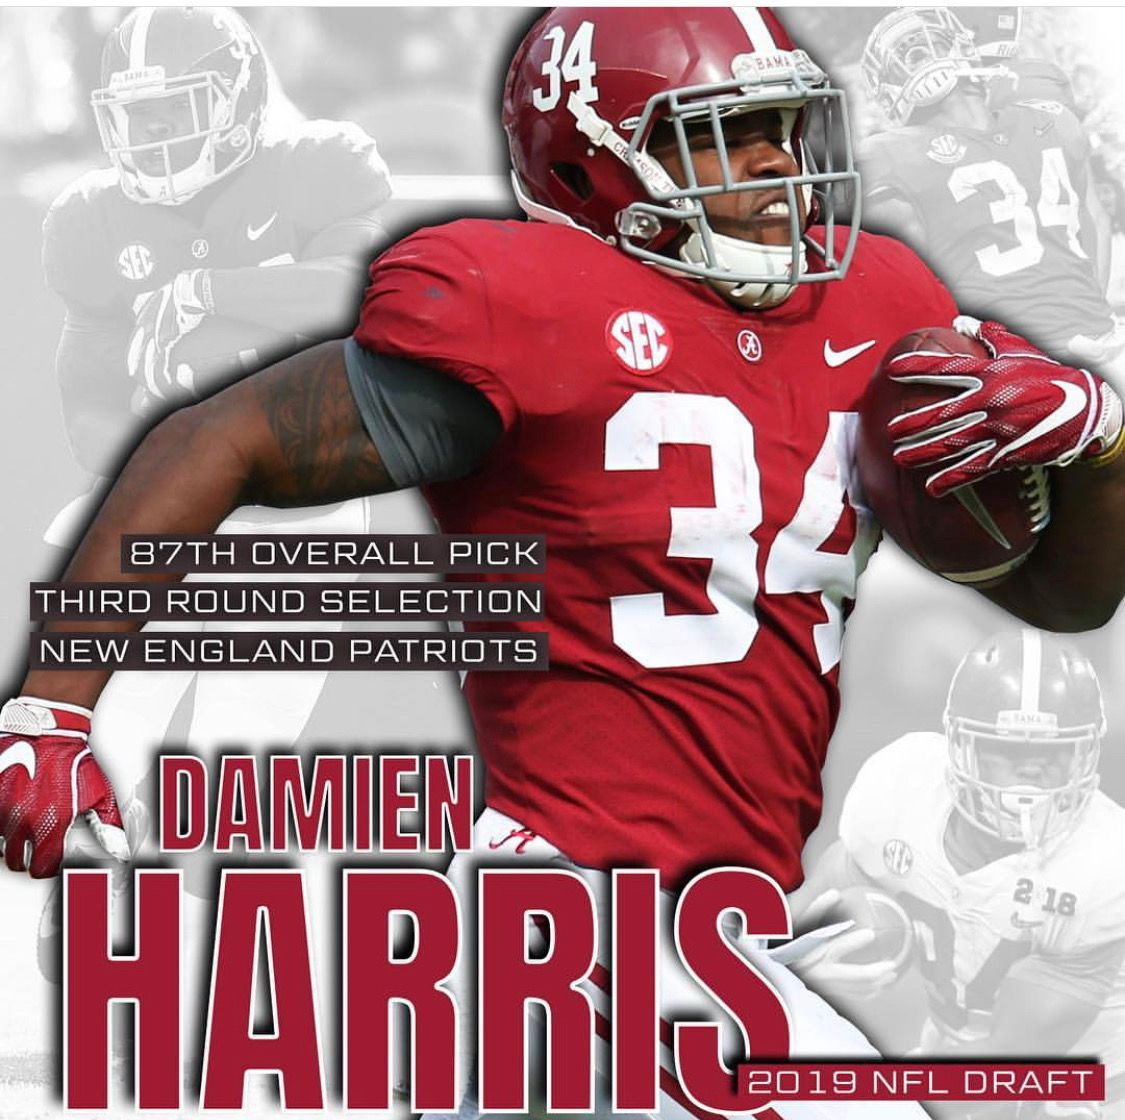 Damien Harris Drafted 87 Overall In 3rd Round By The Patriots 2019nfldraft Alabama Alabama Crimson Tide Football Crimson Tide Football Alabama Crimson Tide